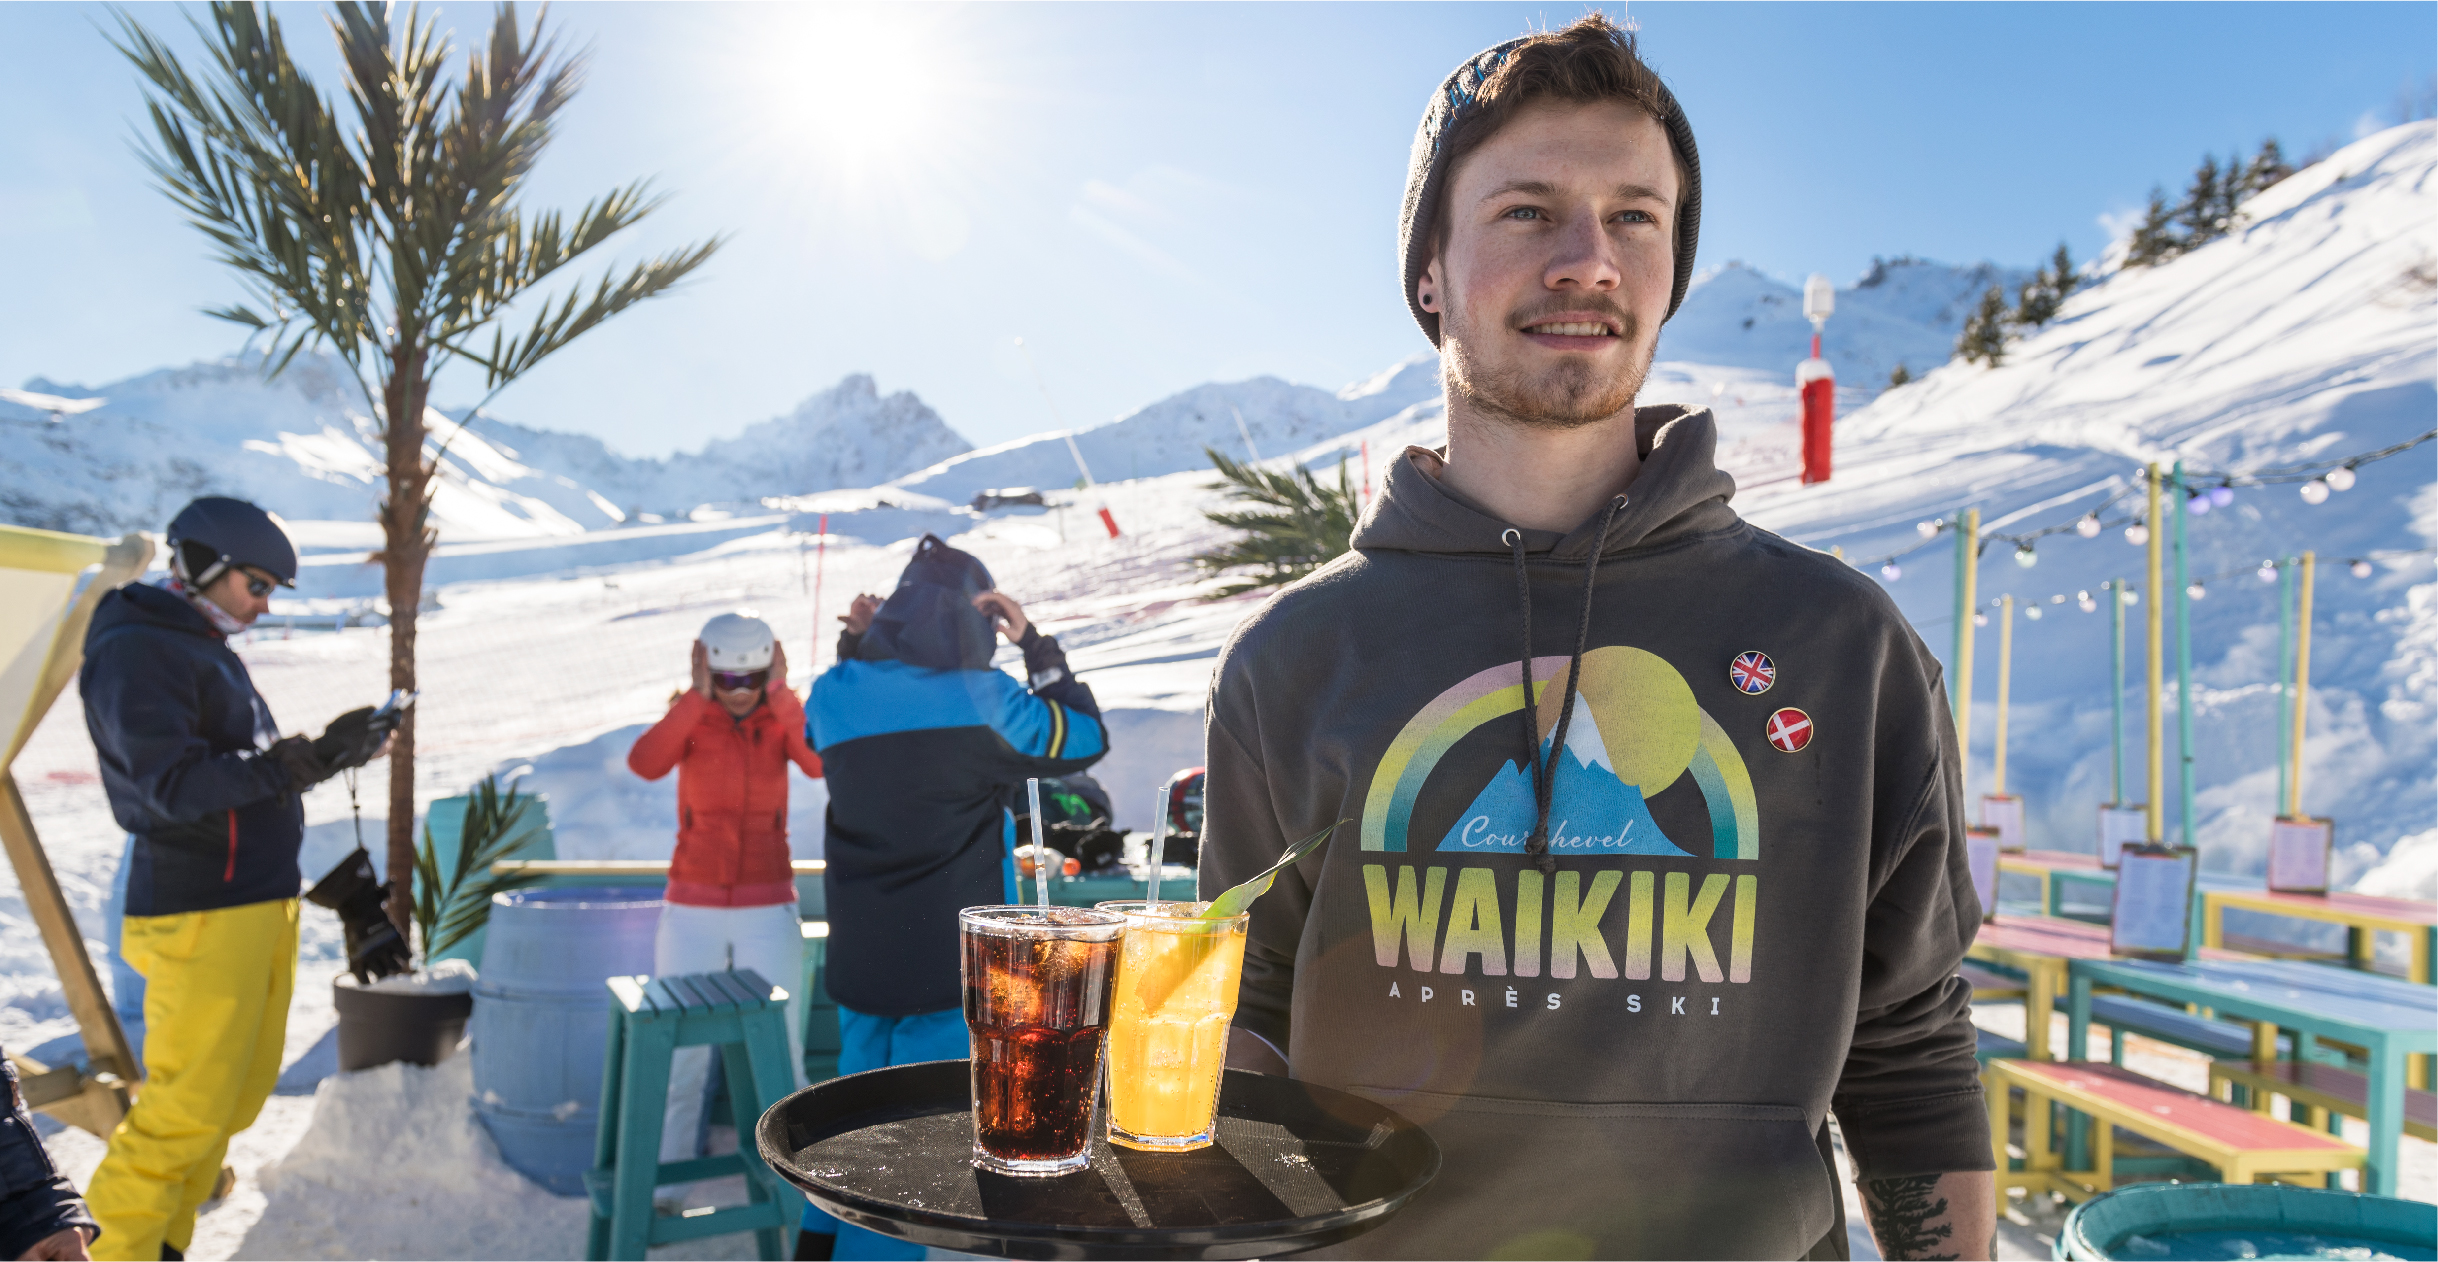 Waiter wearing uniform design for Waikiki Courchevel 1850